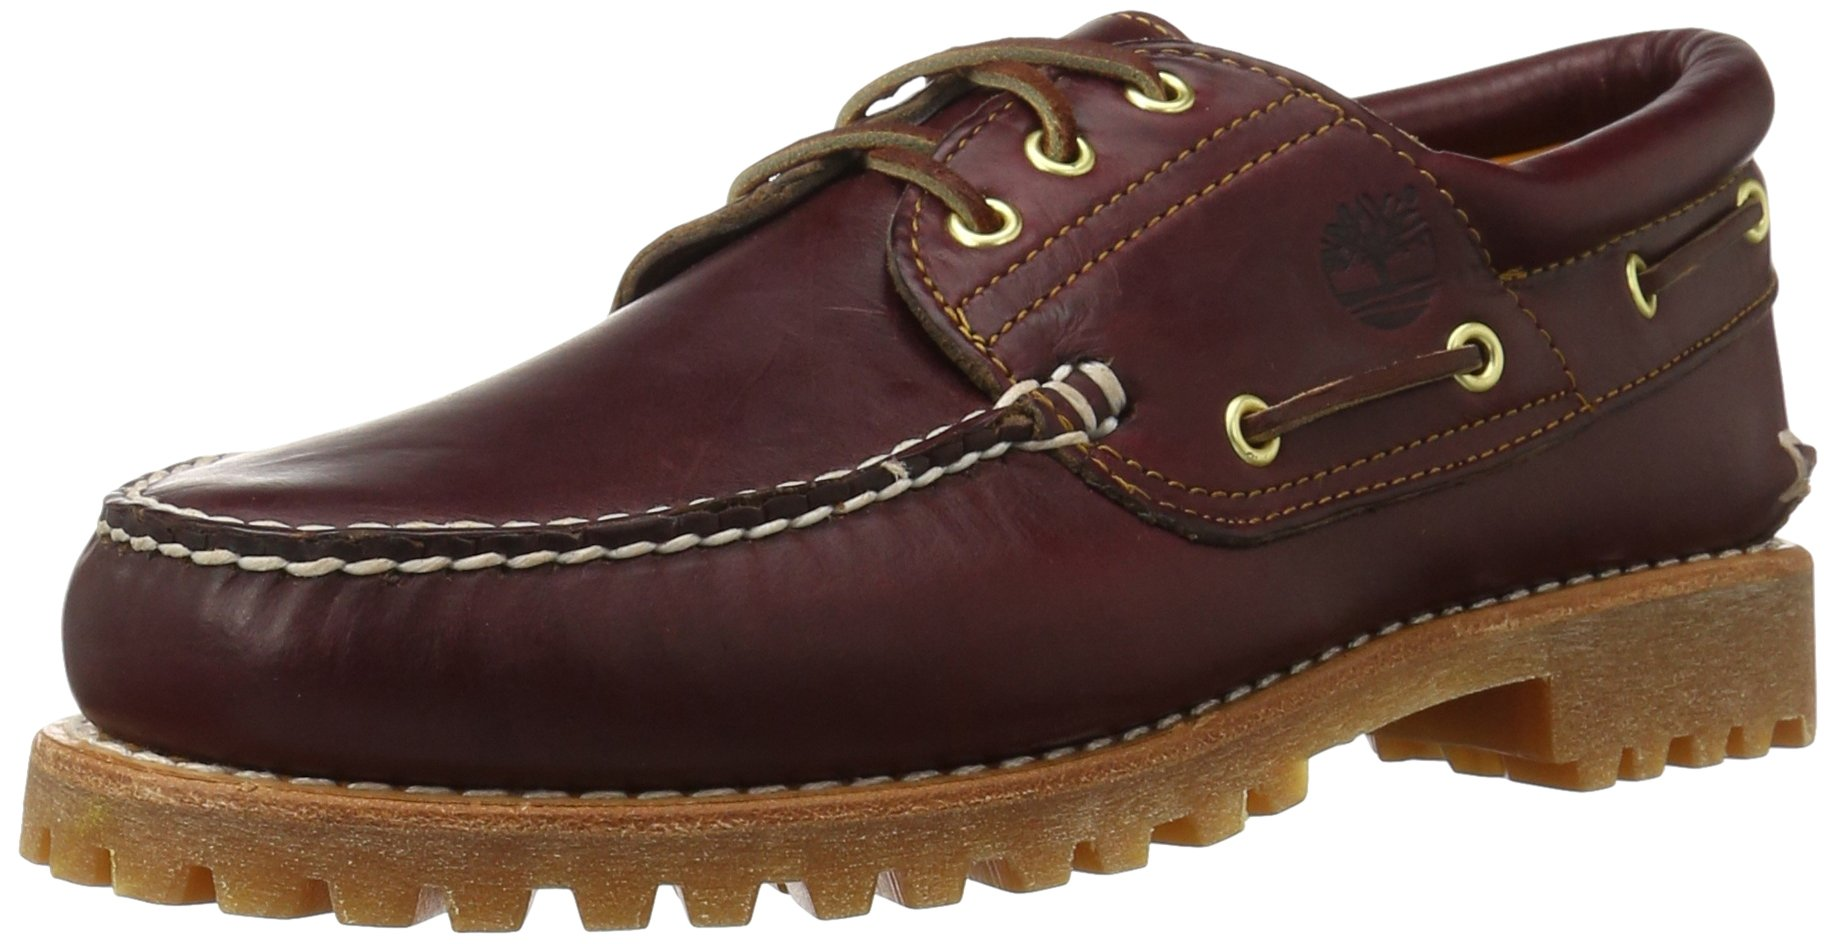 Timberland Men's Traditional Handsewn 3-Eyelet Classic Lug, Burgundy/Brown, 9.5M by Timberland